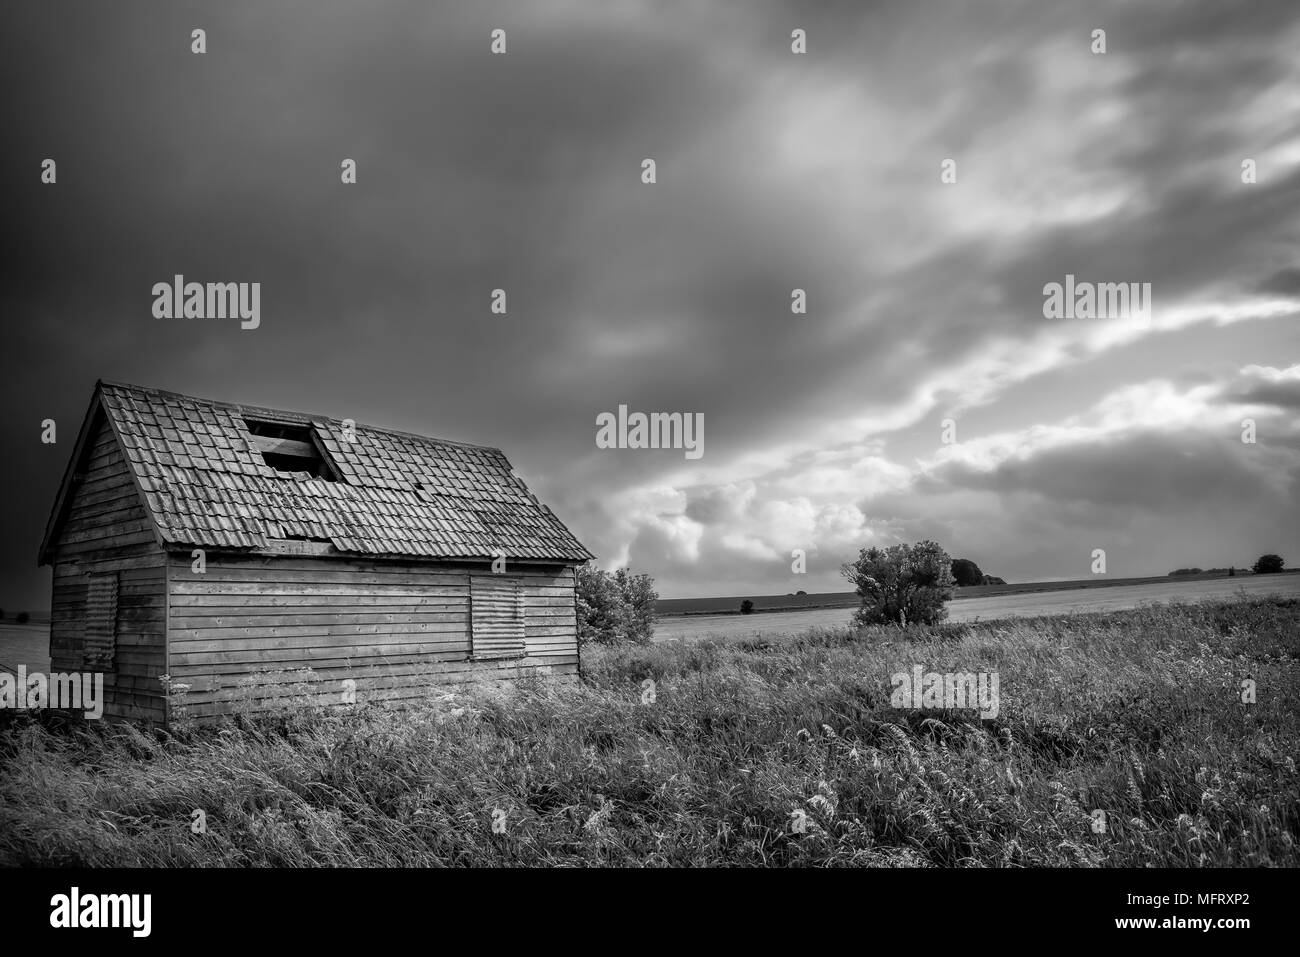 Derelict building on Salisbury plain on a stormy day, Wiltshire - Stock Image